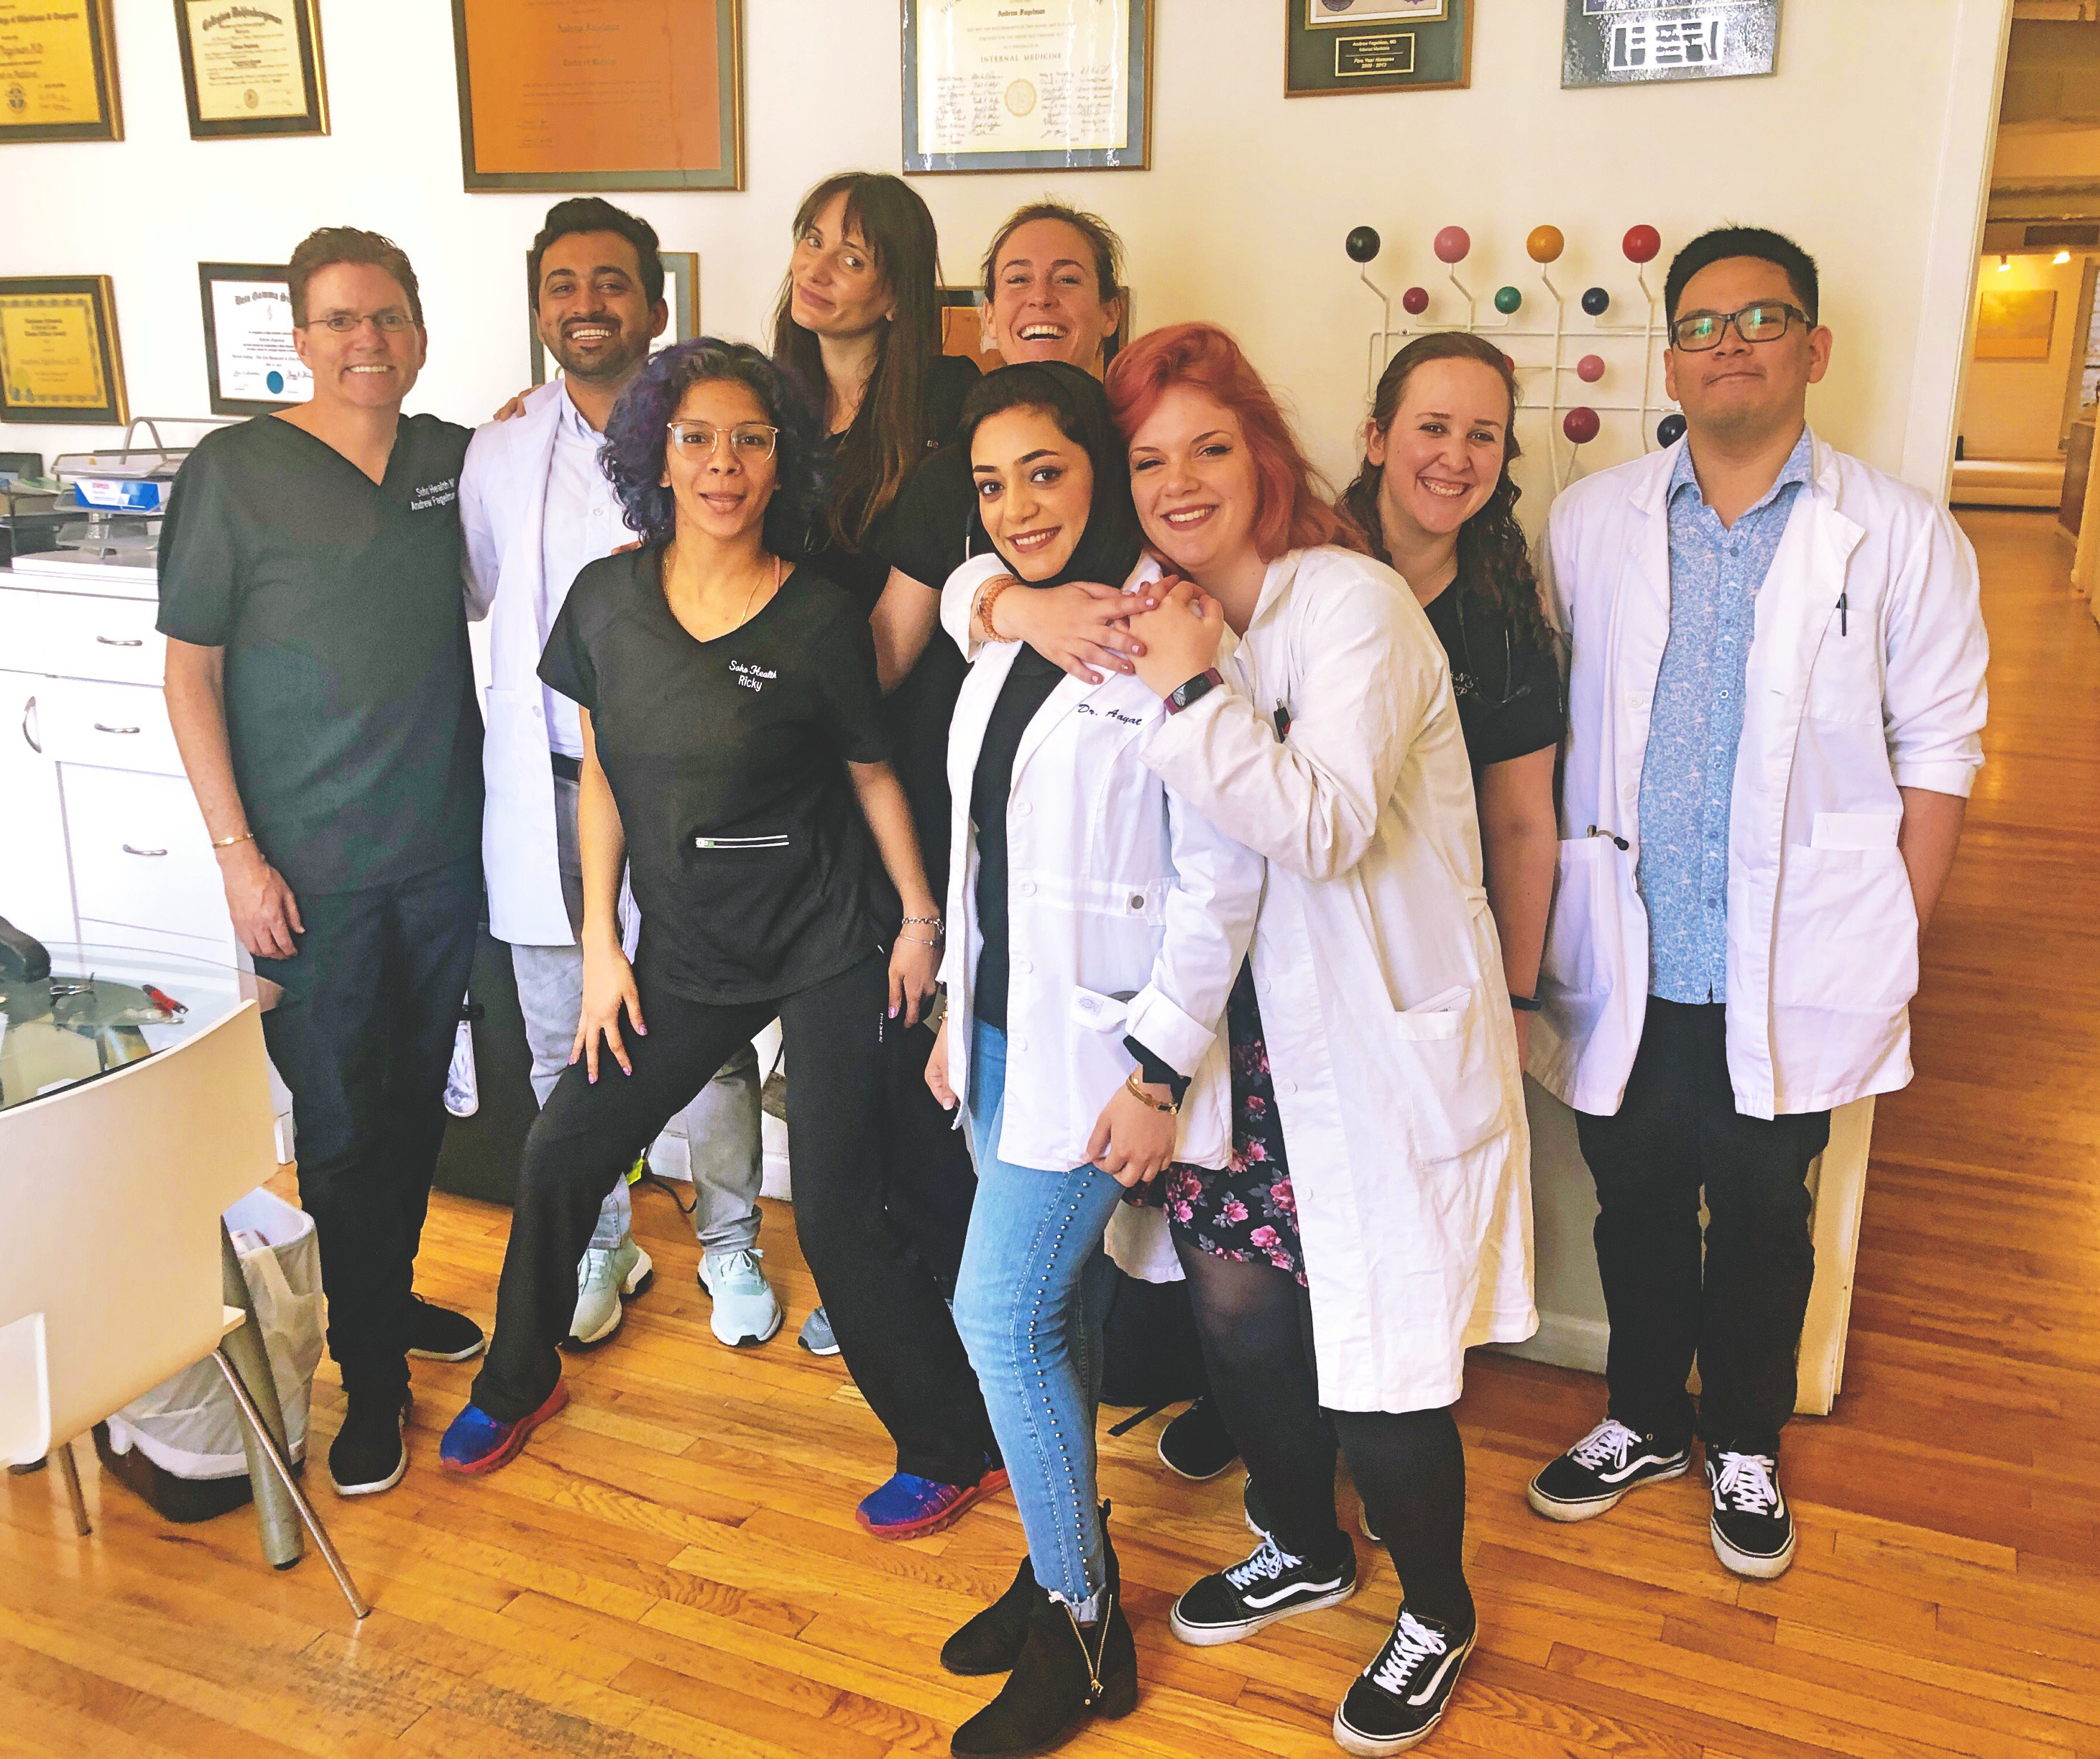 Valentina with physician medical team in New York City